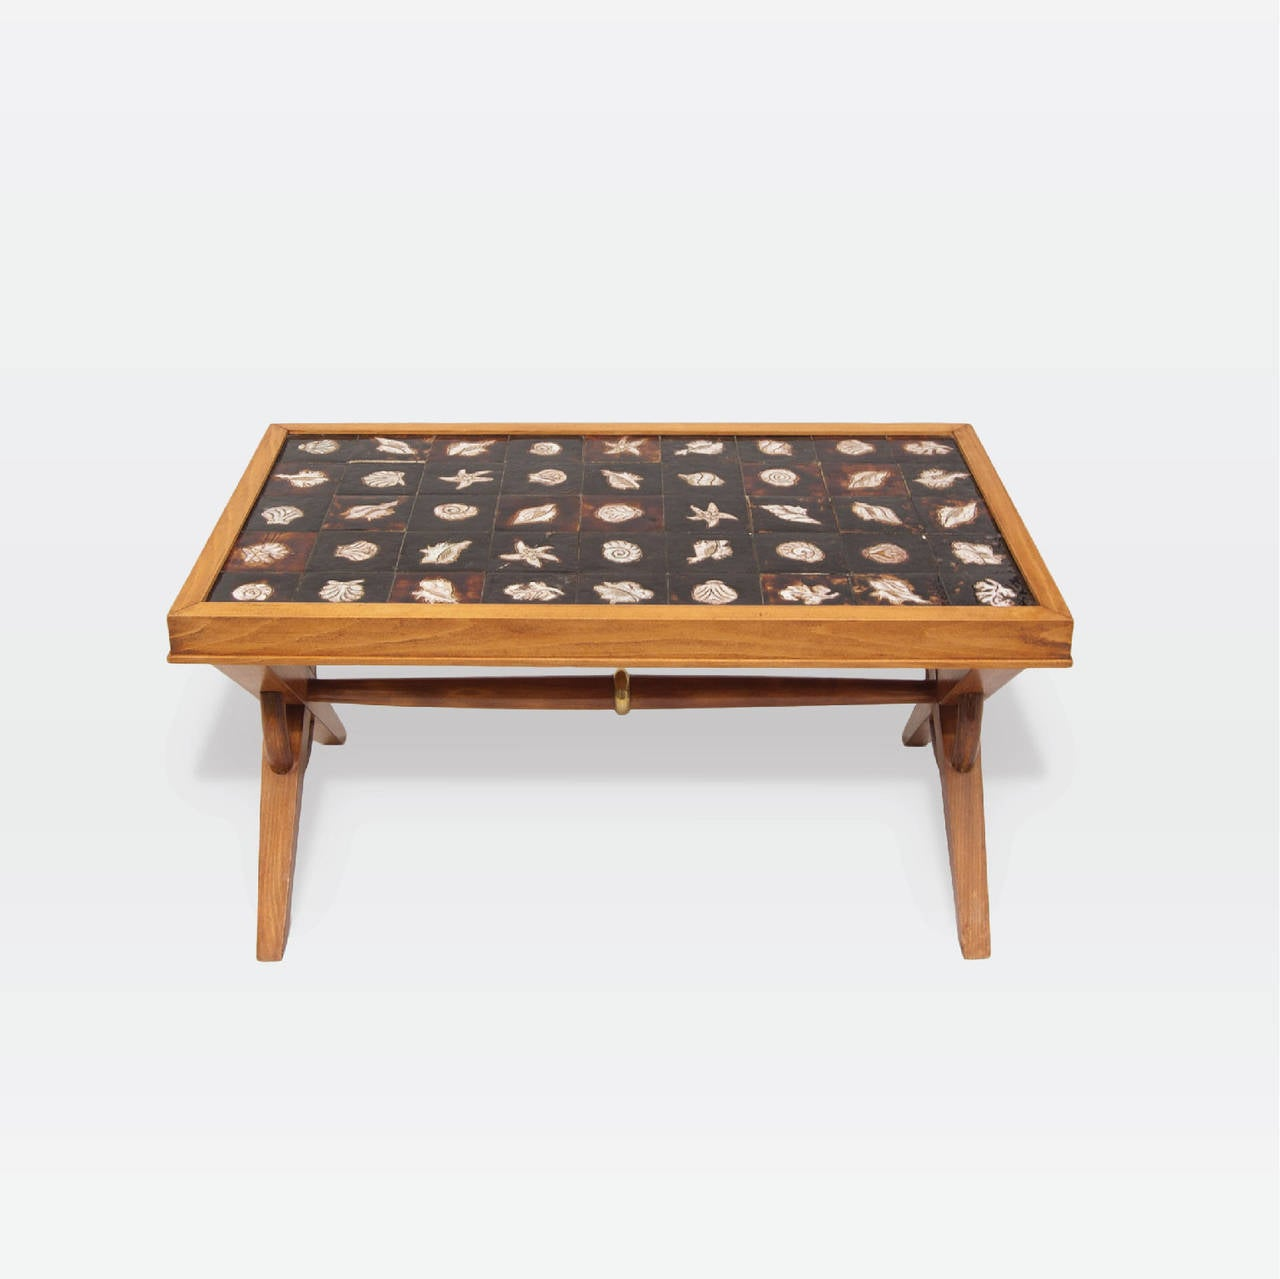 Henry Jacques Le Même Cocktail Table at 1stdibs